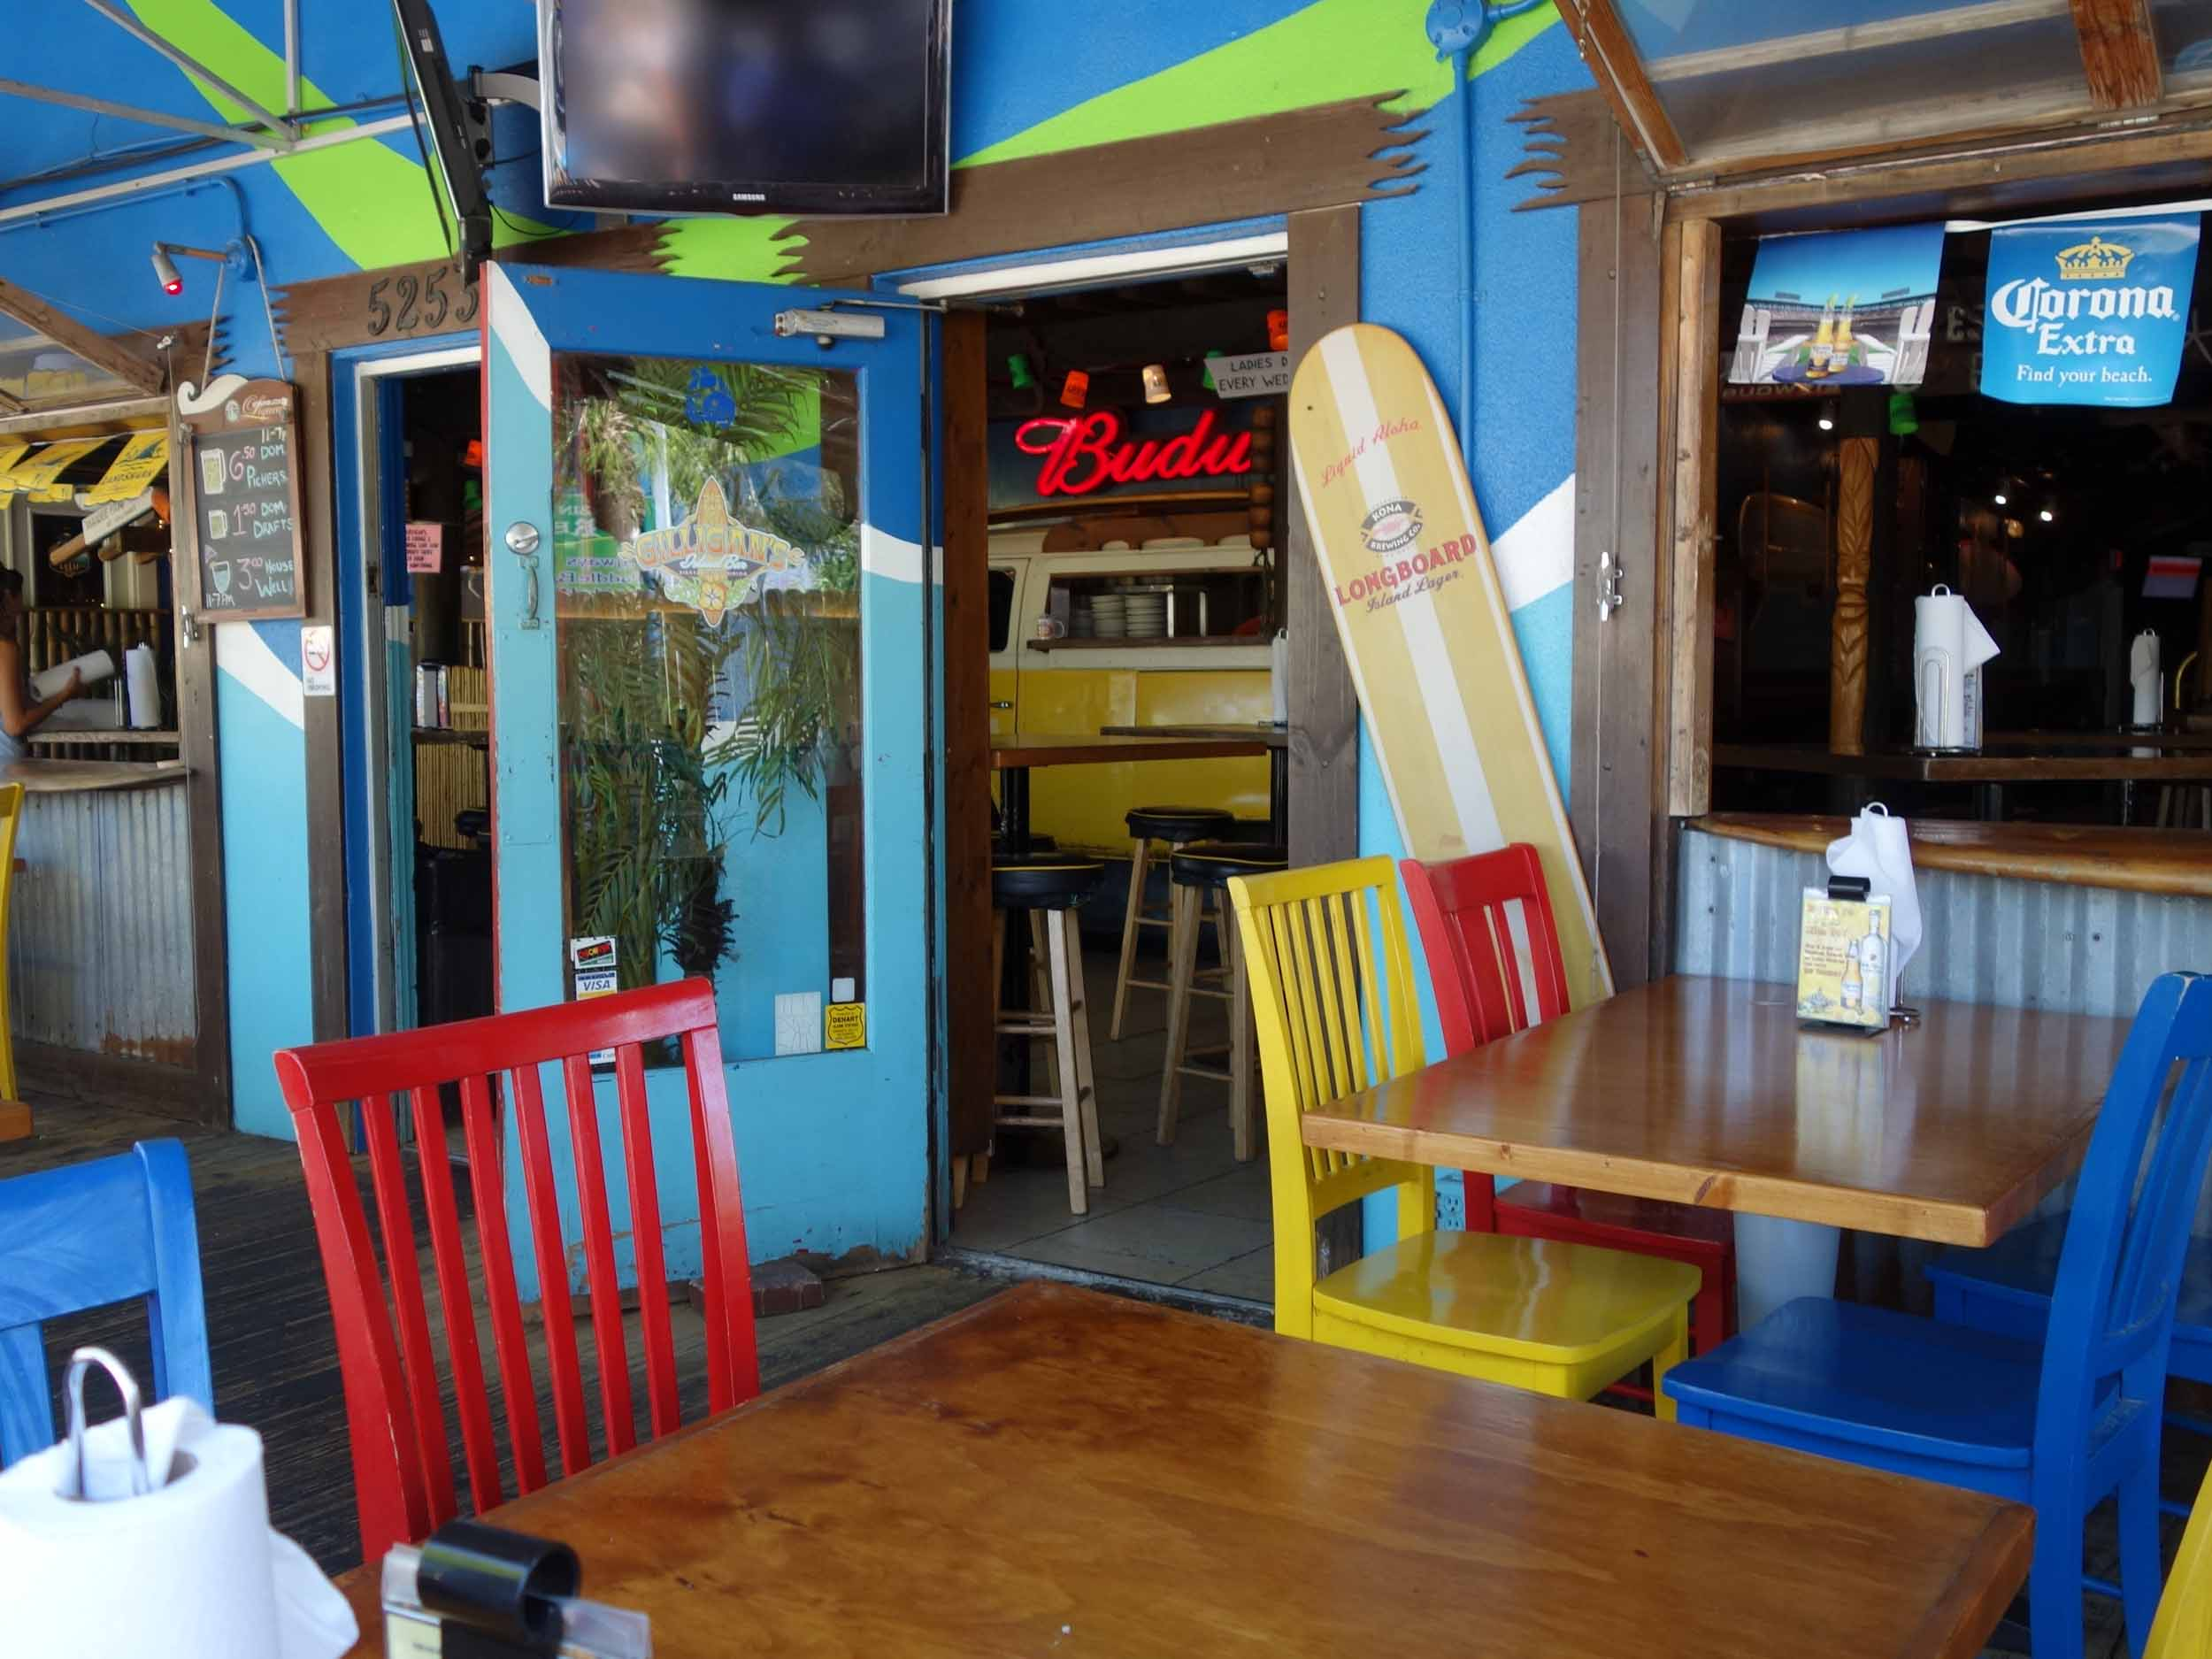 Gilligan's Island Bar and Grill Seating Area